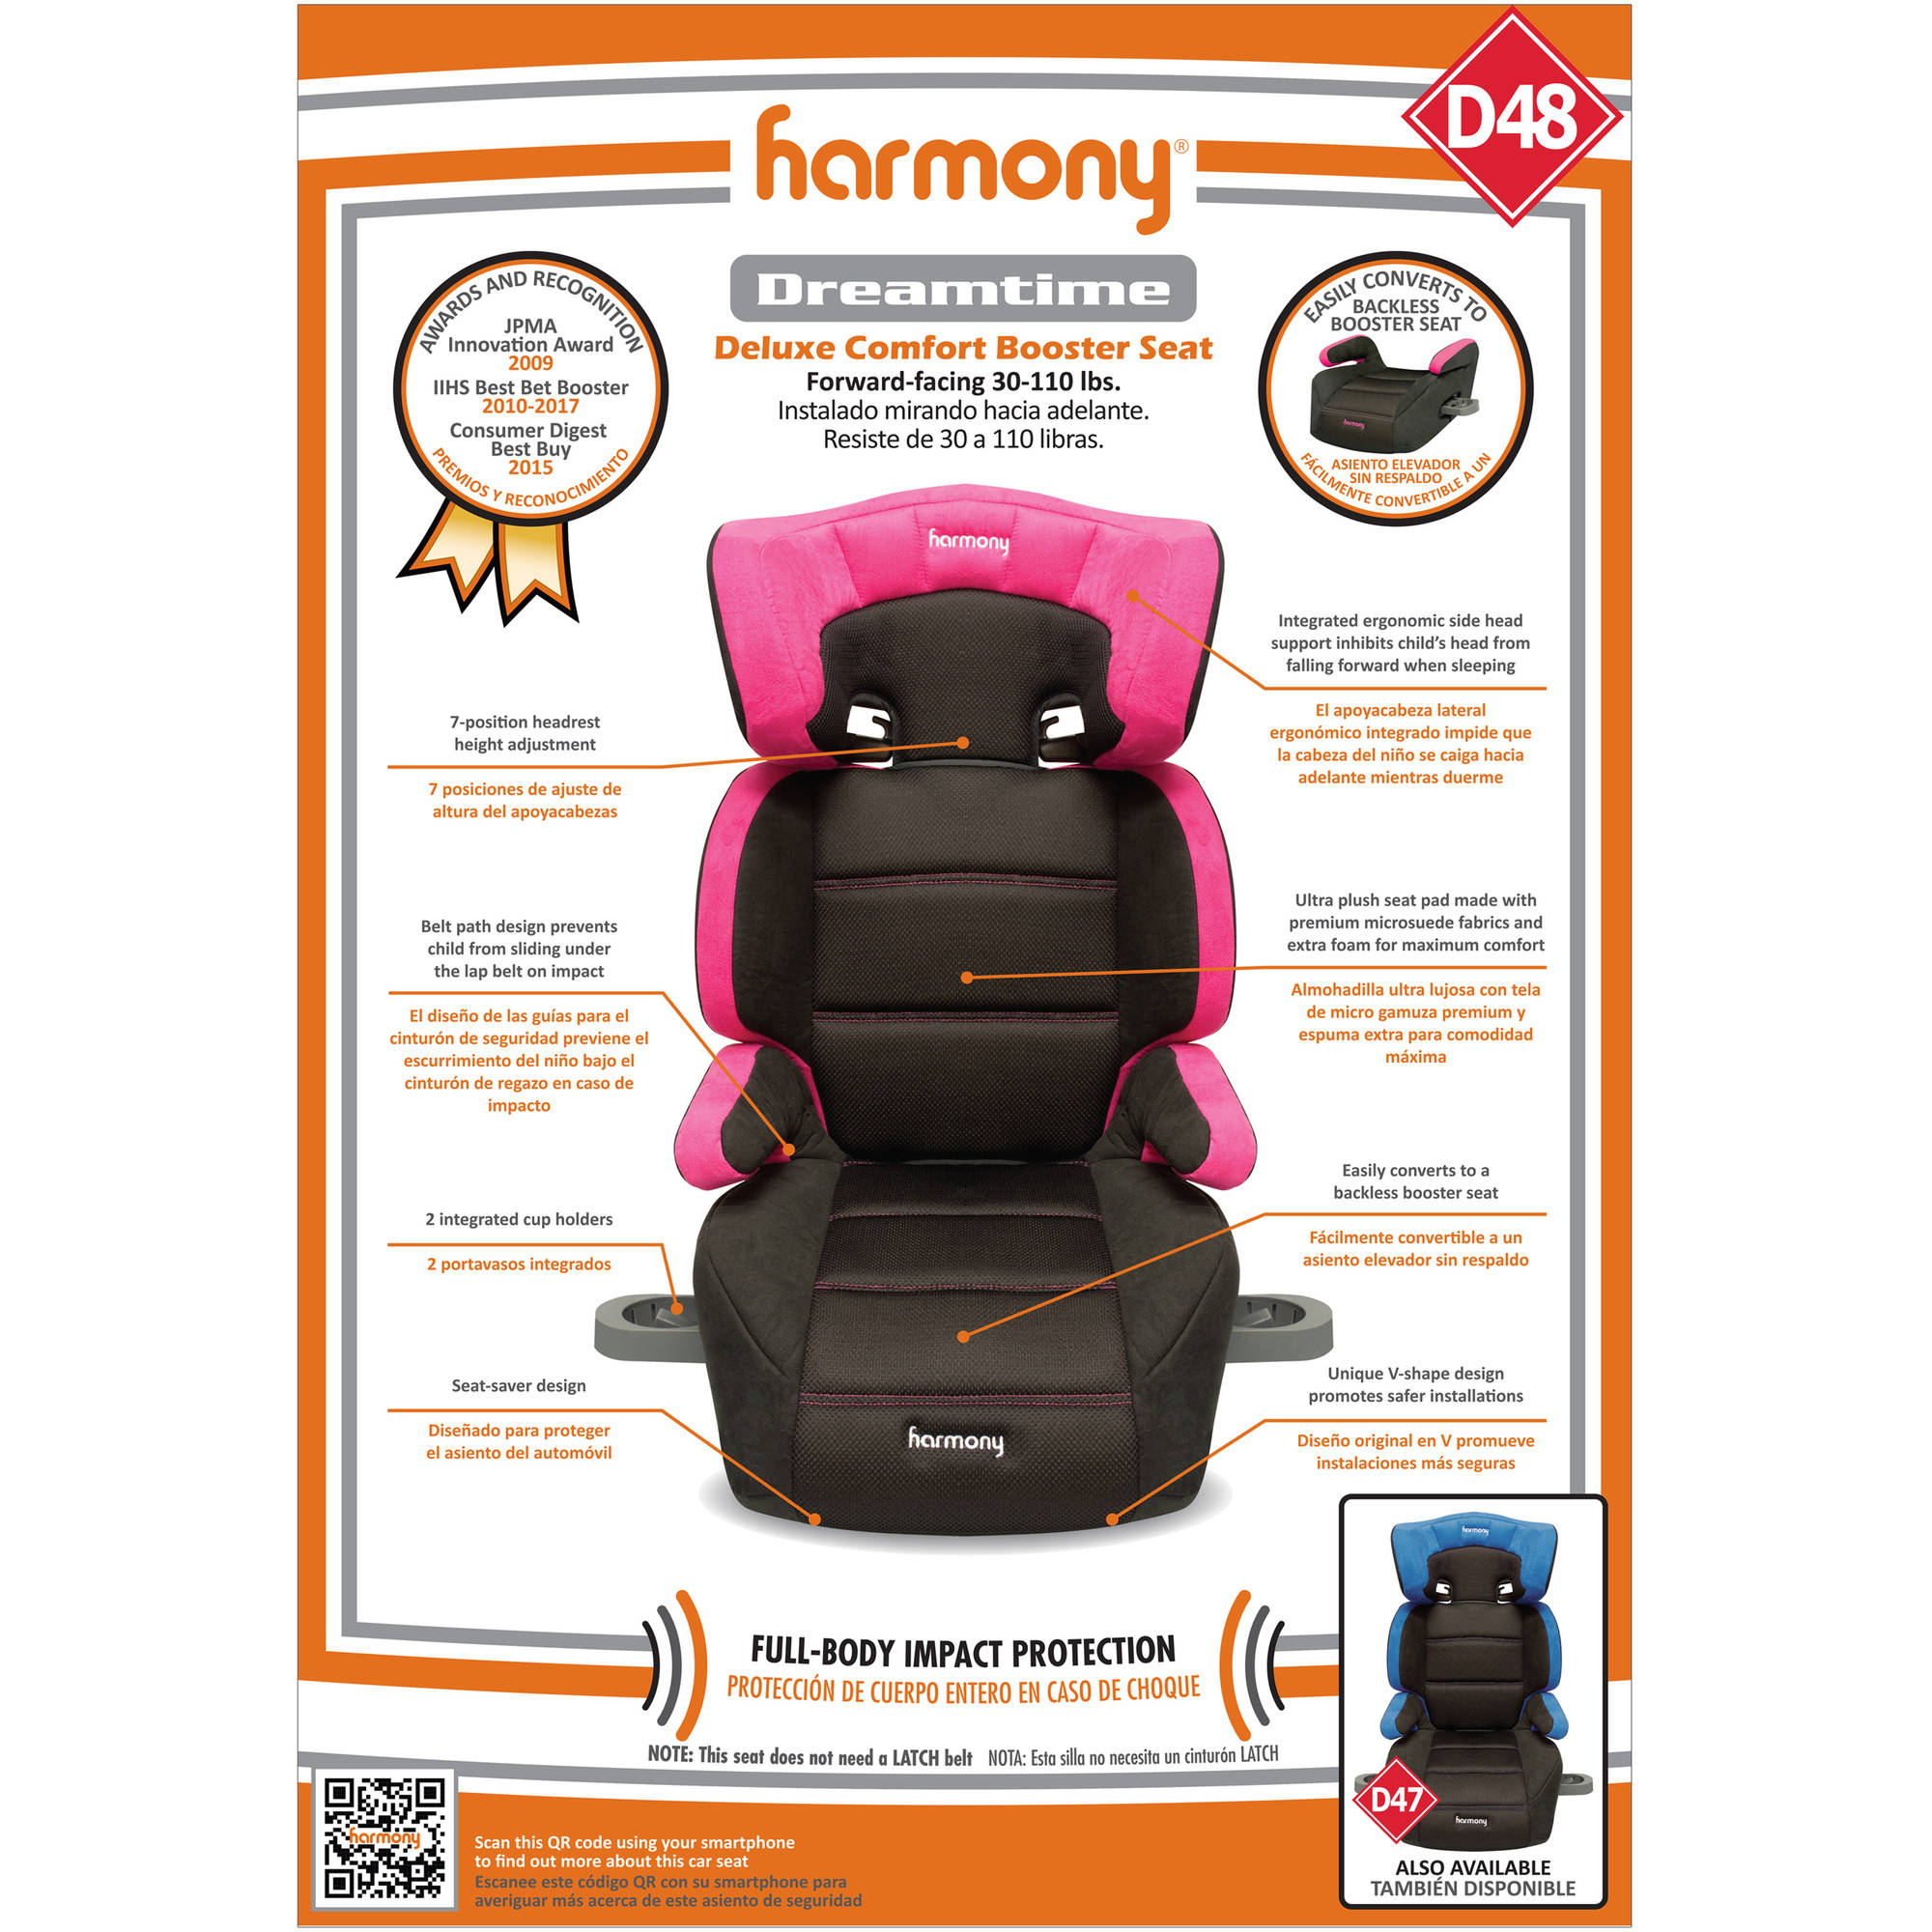 Harmony Juvenile Dreamtime Deluxe Comfort High Back Booster Car Seat Pink